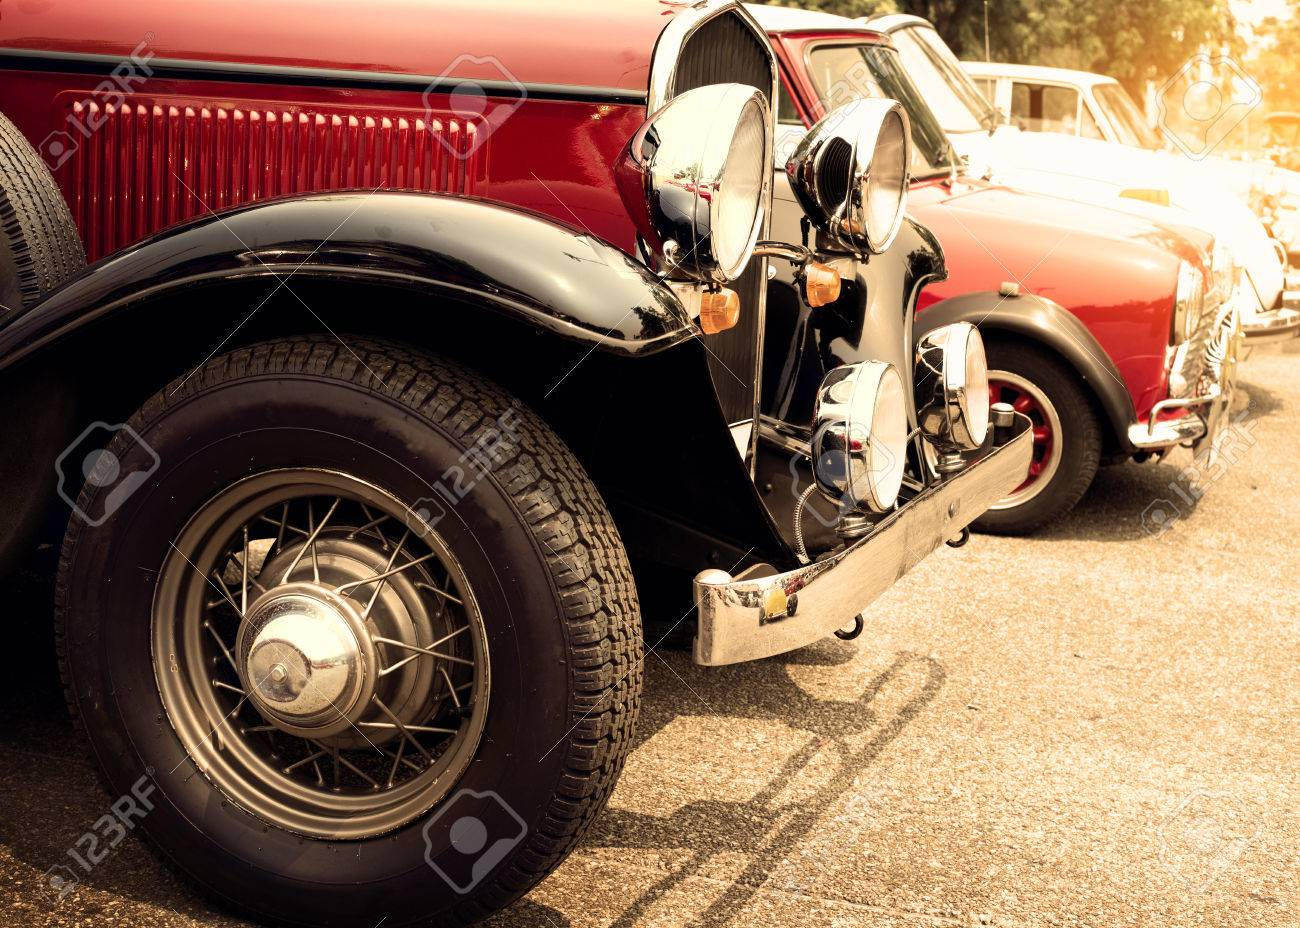 Detail of front vintage car wheels and headlight - Classic vehicles - 50568591